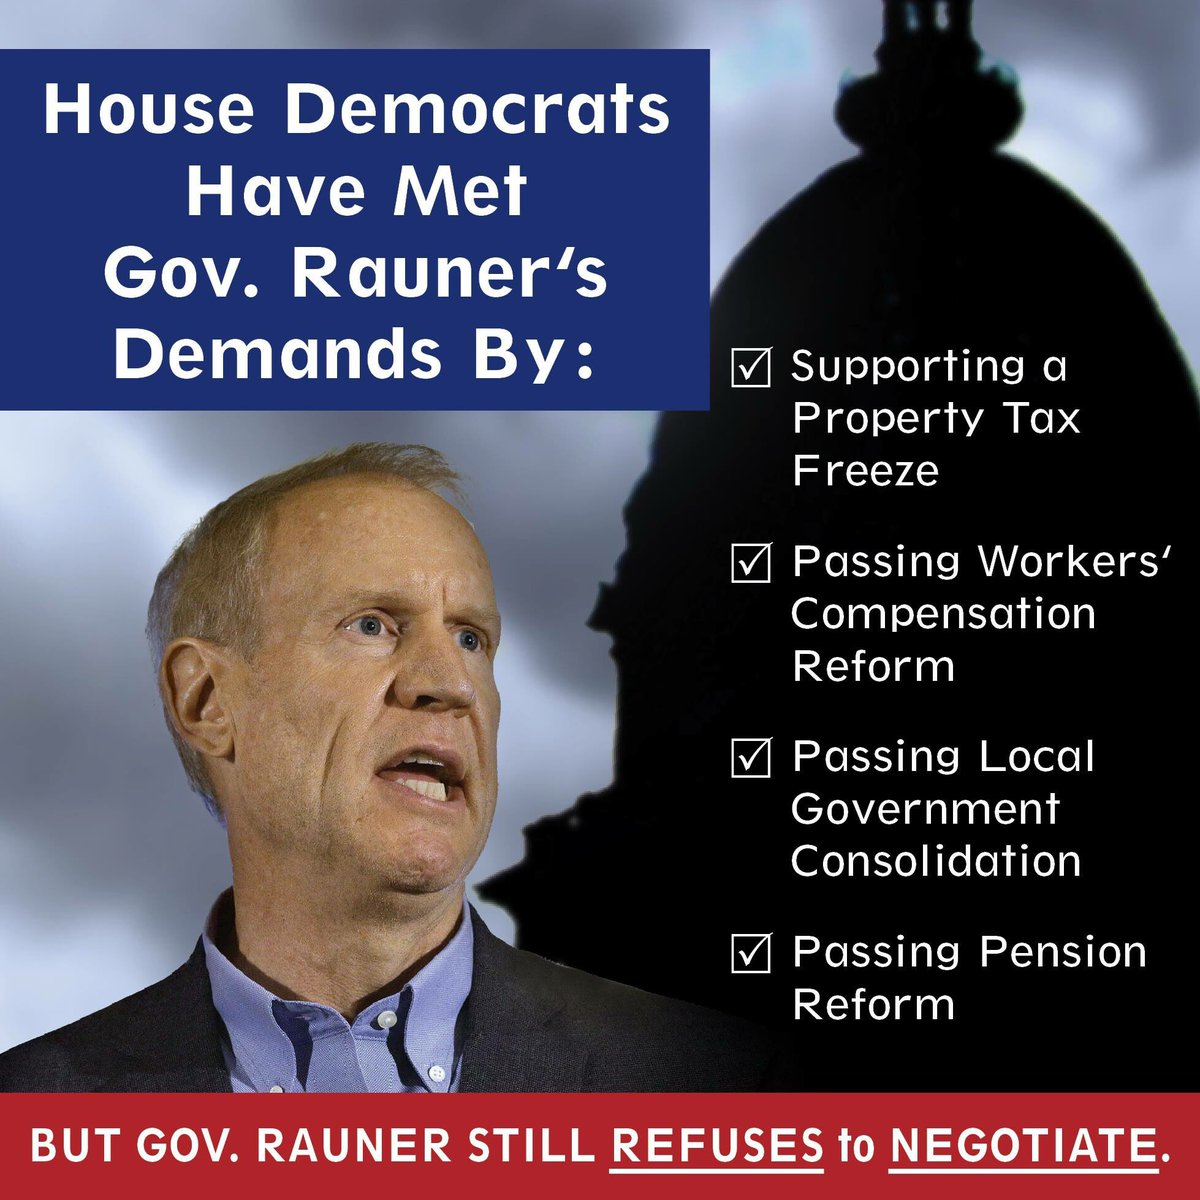 test Twitter Media - House Dems have met Gov. Rauner's special session demands, but he still REFUSES to NEGOTIATE. Call Bruce Rauner today!#BudgetNow #Compromise https://t.co/vCvze2BLqe